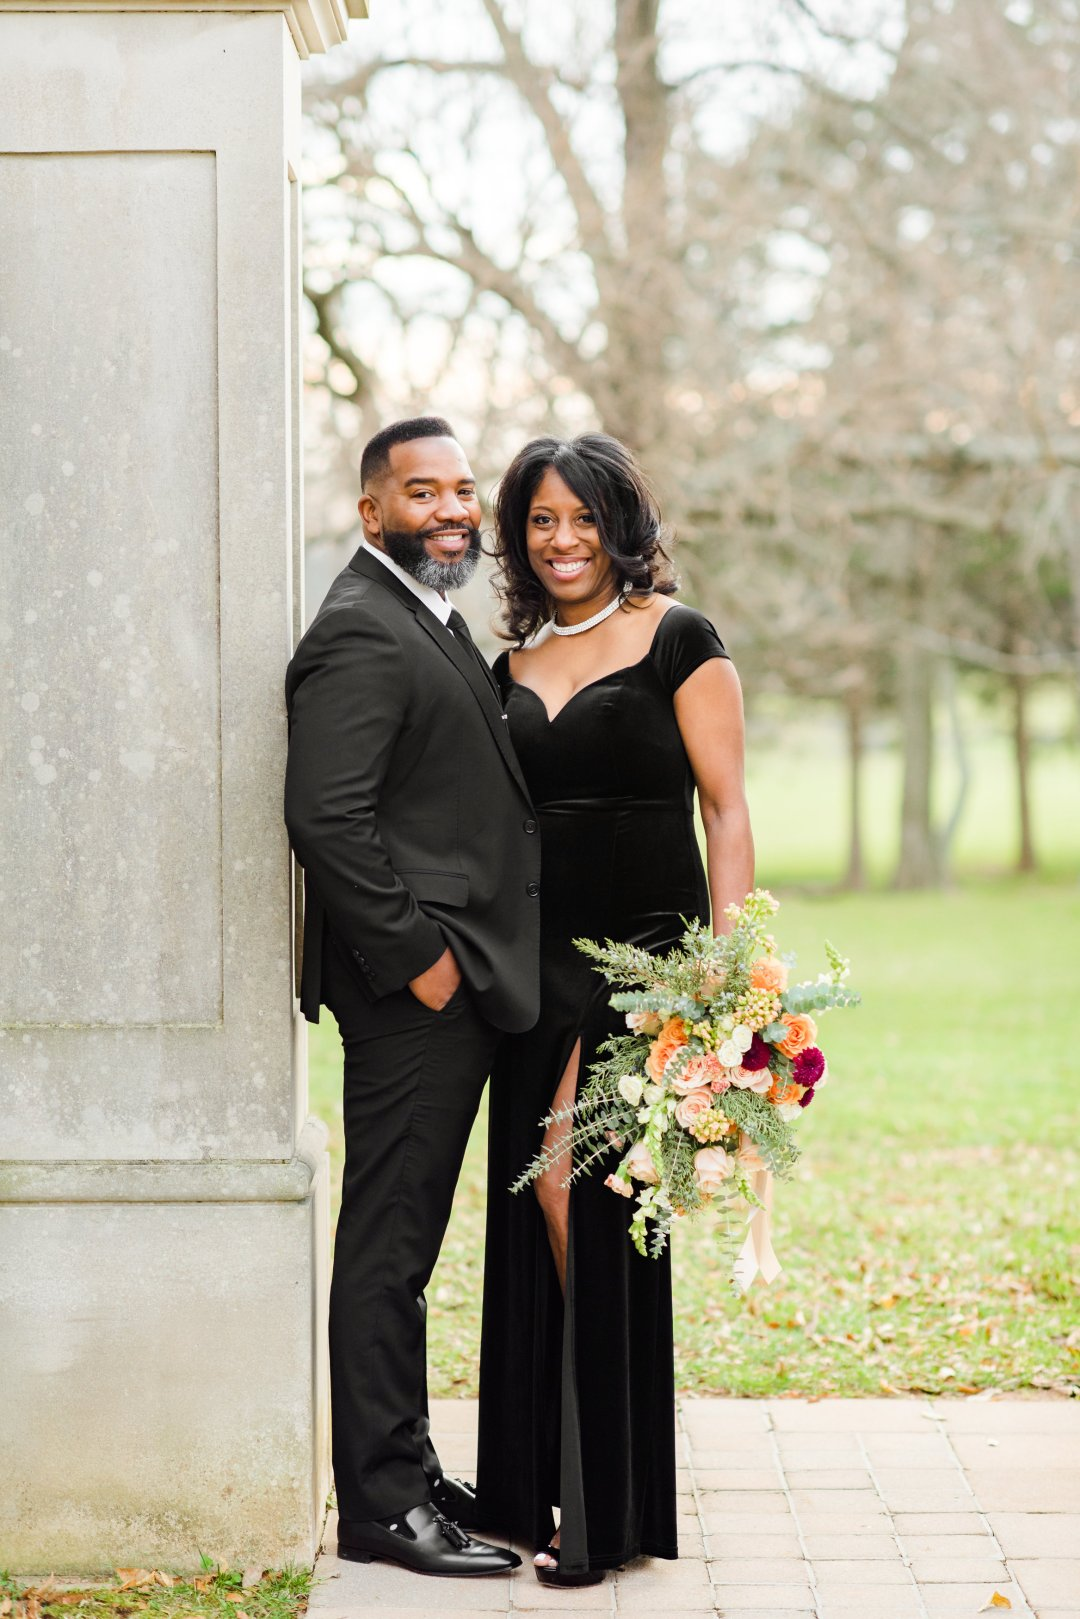 gaines2018-123-1440x2158 Southern Black Love: 25 Anniversary Shoot with the Gaines Family